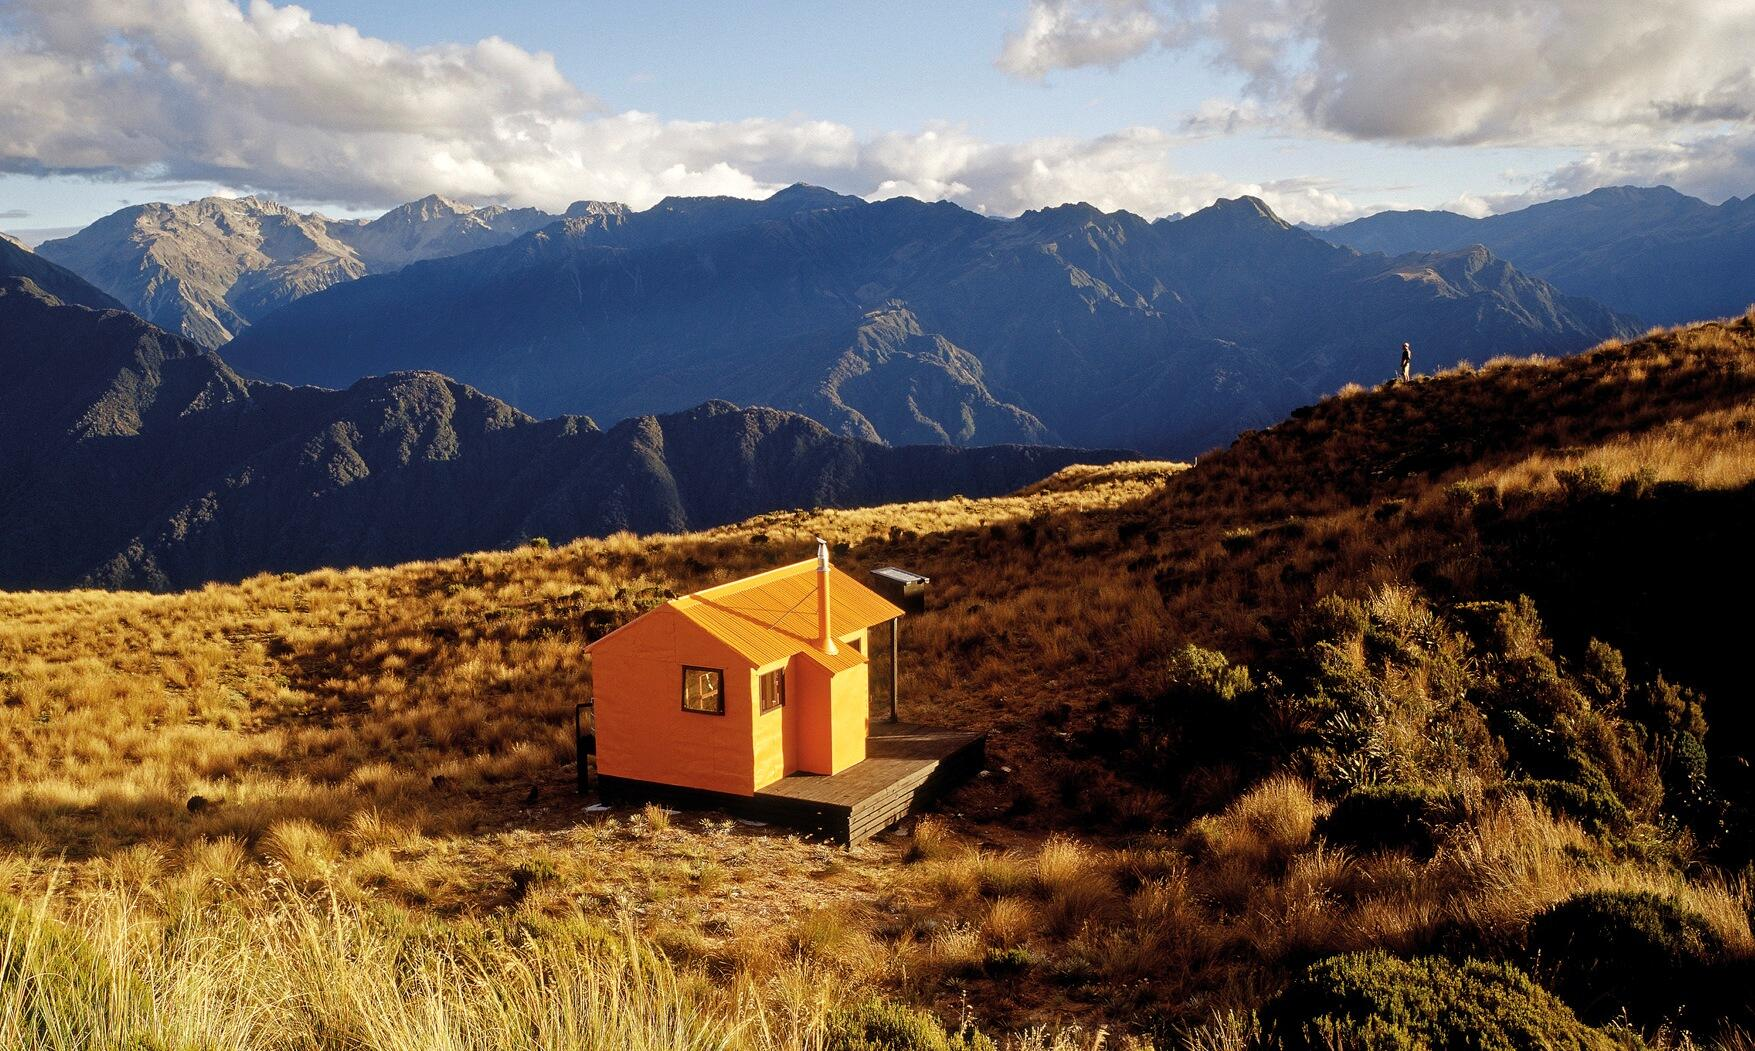 shelter from the storm nz 39 s backcountry huts media releases the big idea arts creative. Black Bedroom Furniture Sets. Home Design Ideas